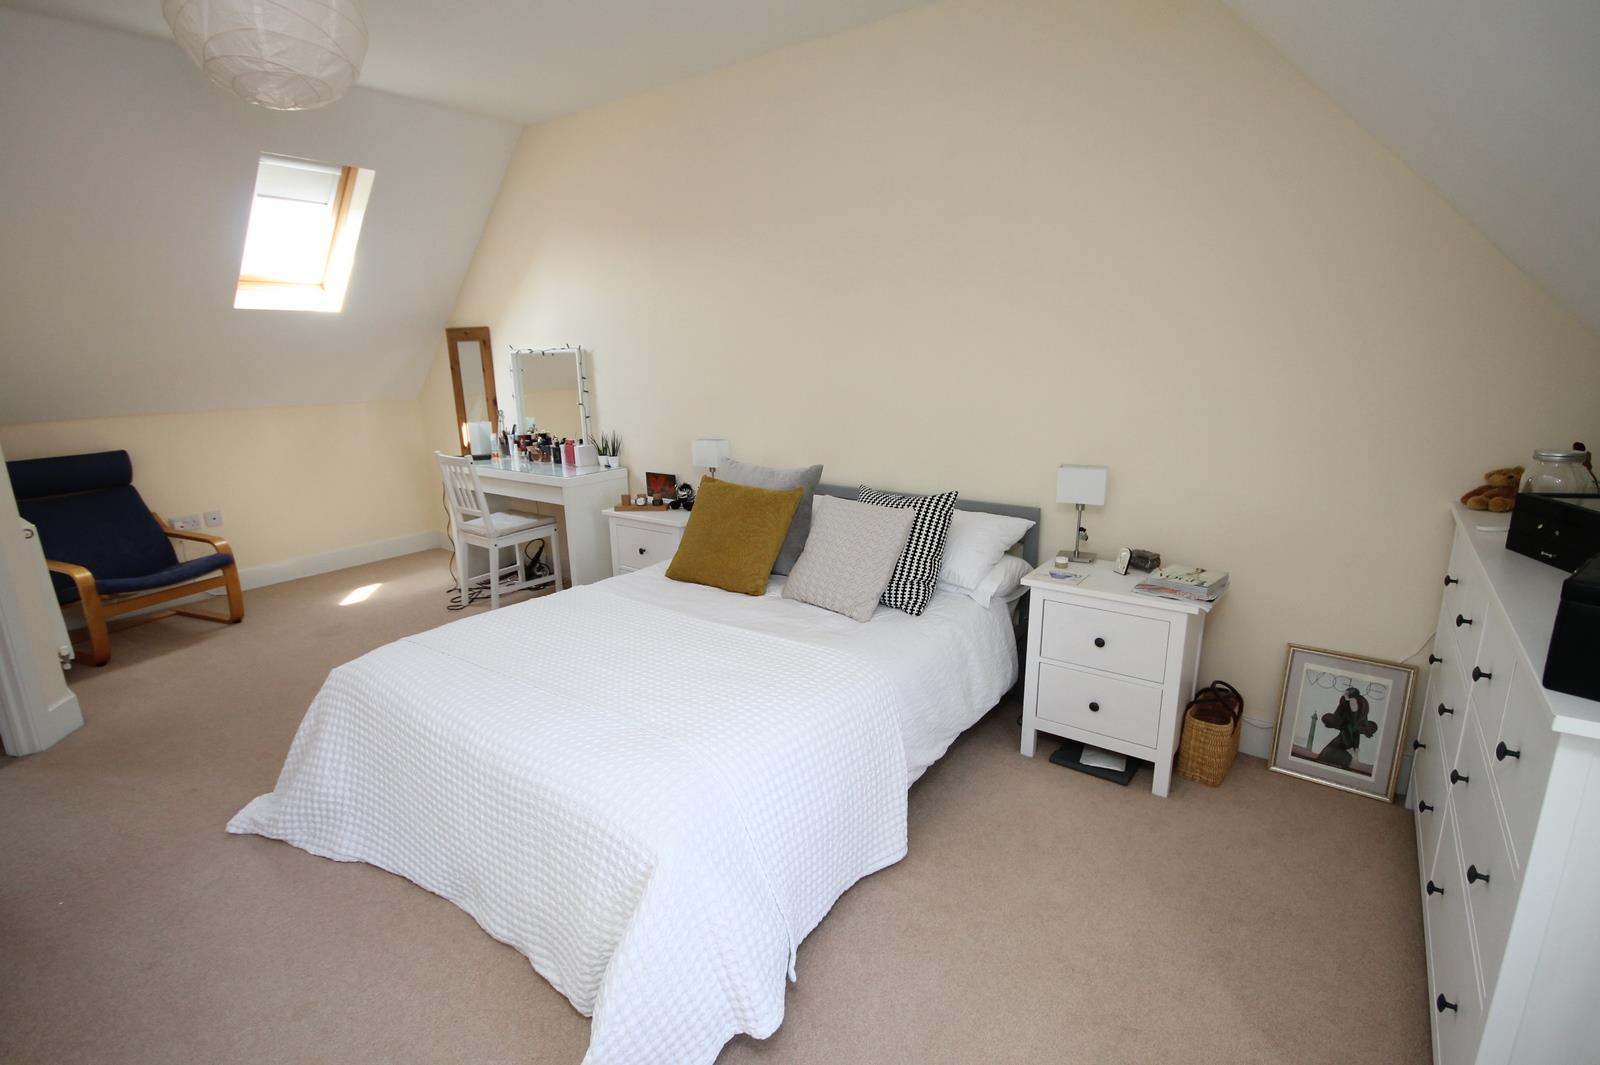 4 bed house to rent in Blackcurrant Drive, Bristol  - Property Image 3